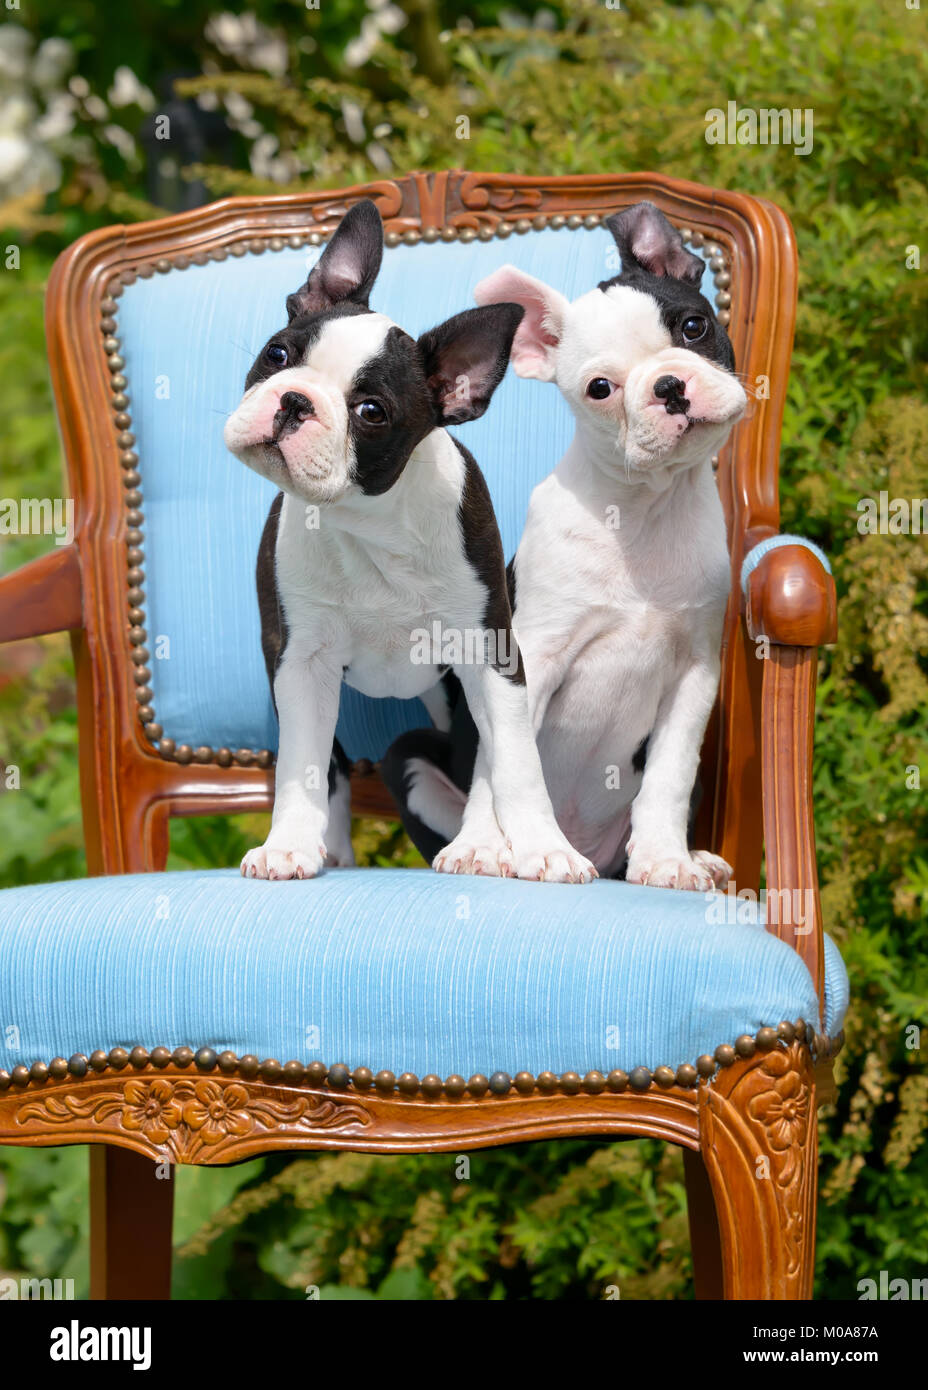 Two young Boston Terrier dogs, also called Boston Bulls, puppies, black with white markings, sitting side by side - Stock Image